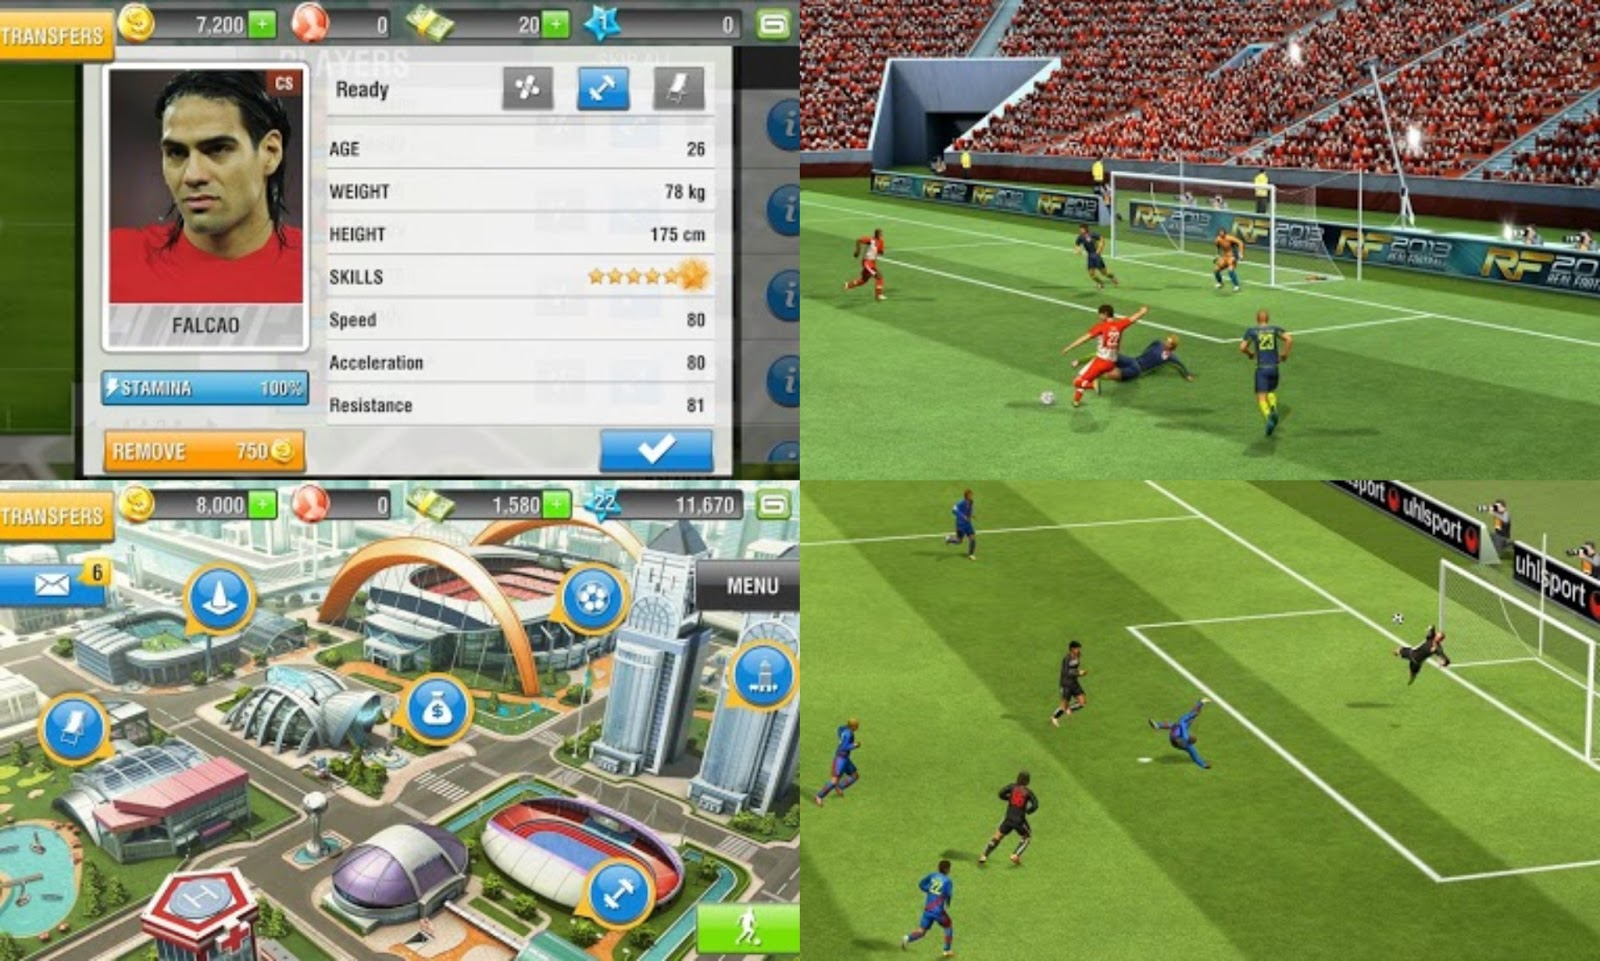 RF (Real Football) 2013 v1.0.3 Apk + SD Data | Android Games Download